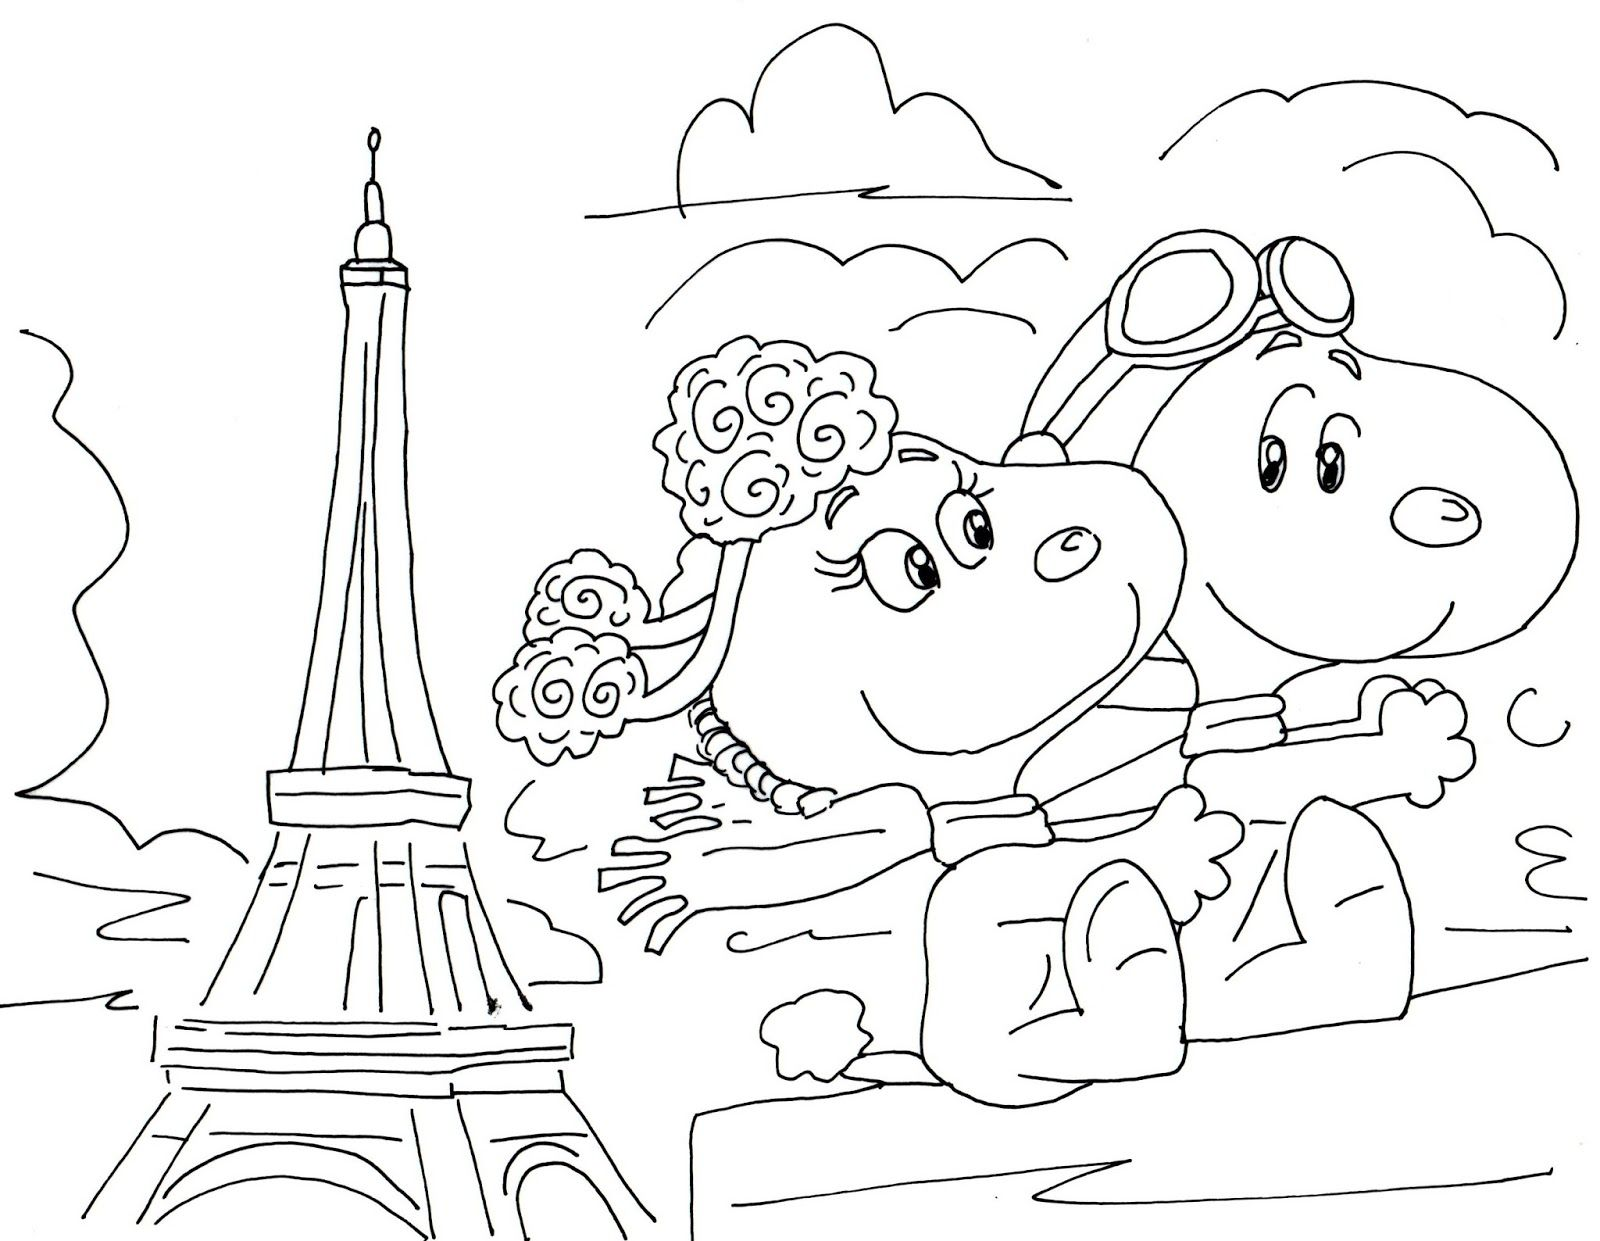 Free Charlie Brown Snoopy And Peanuts Coloring Pages Fifi And Snoopy Coloring Pages Coloring Pages Free Coloring Pages